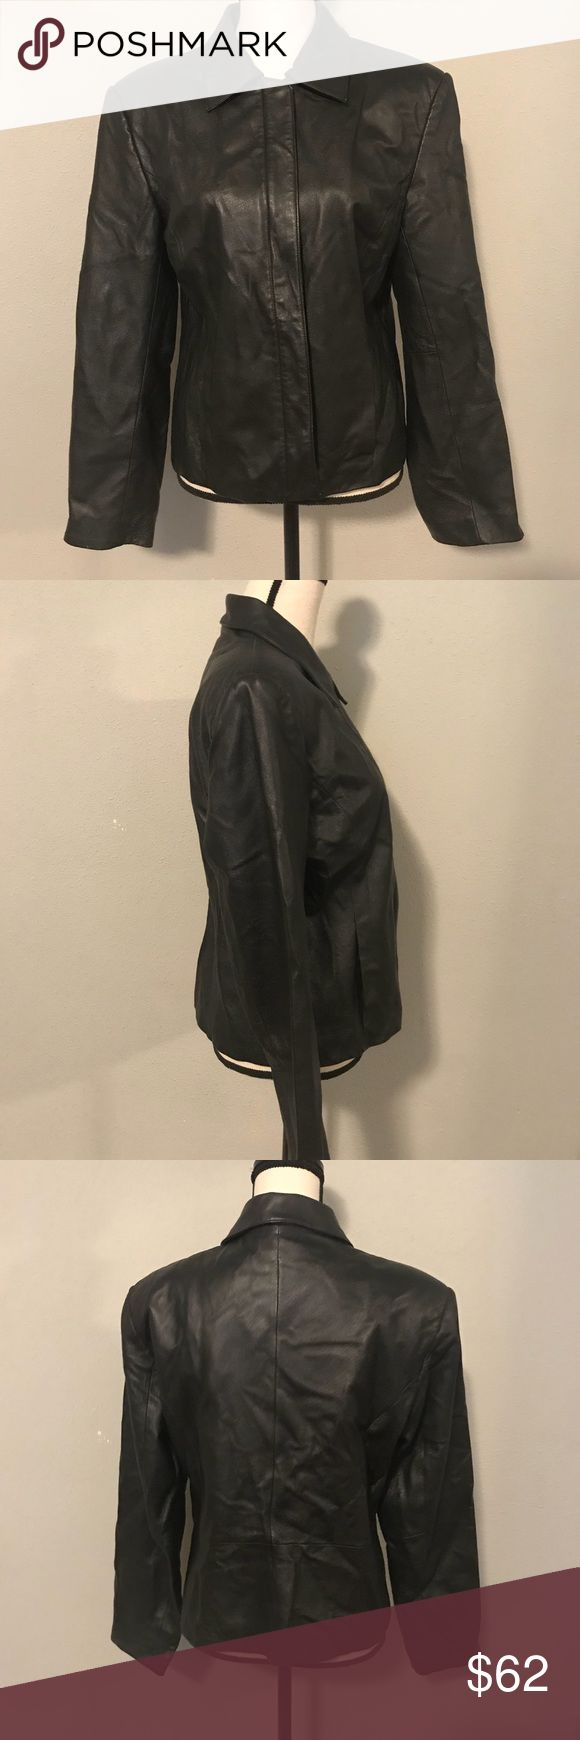 "[Clio] Black Leather Jacket Clio, black leather jacket. Fitted. Missing zipper handle.  Size: 10 Material: 100% Leather Shell Condition: Pre-owned. Fair. Approx. Measurements:  ▪️Pit to Pit: 20"" ▪️Arm: 23.5"" ▪️Length: 23""  ❤️❤️❤️SHIP SAME DAY OR NEXT DAY❤️❤️❤️ ❤️ORDERS ON WEEKENDS SHIP MONDAY ❤️❤️REASONABLE OFFERS ARE CONSIDERED❤️❤️ Clio Jackets & Coats"